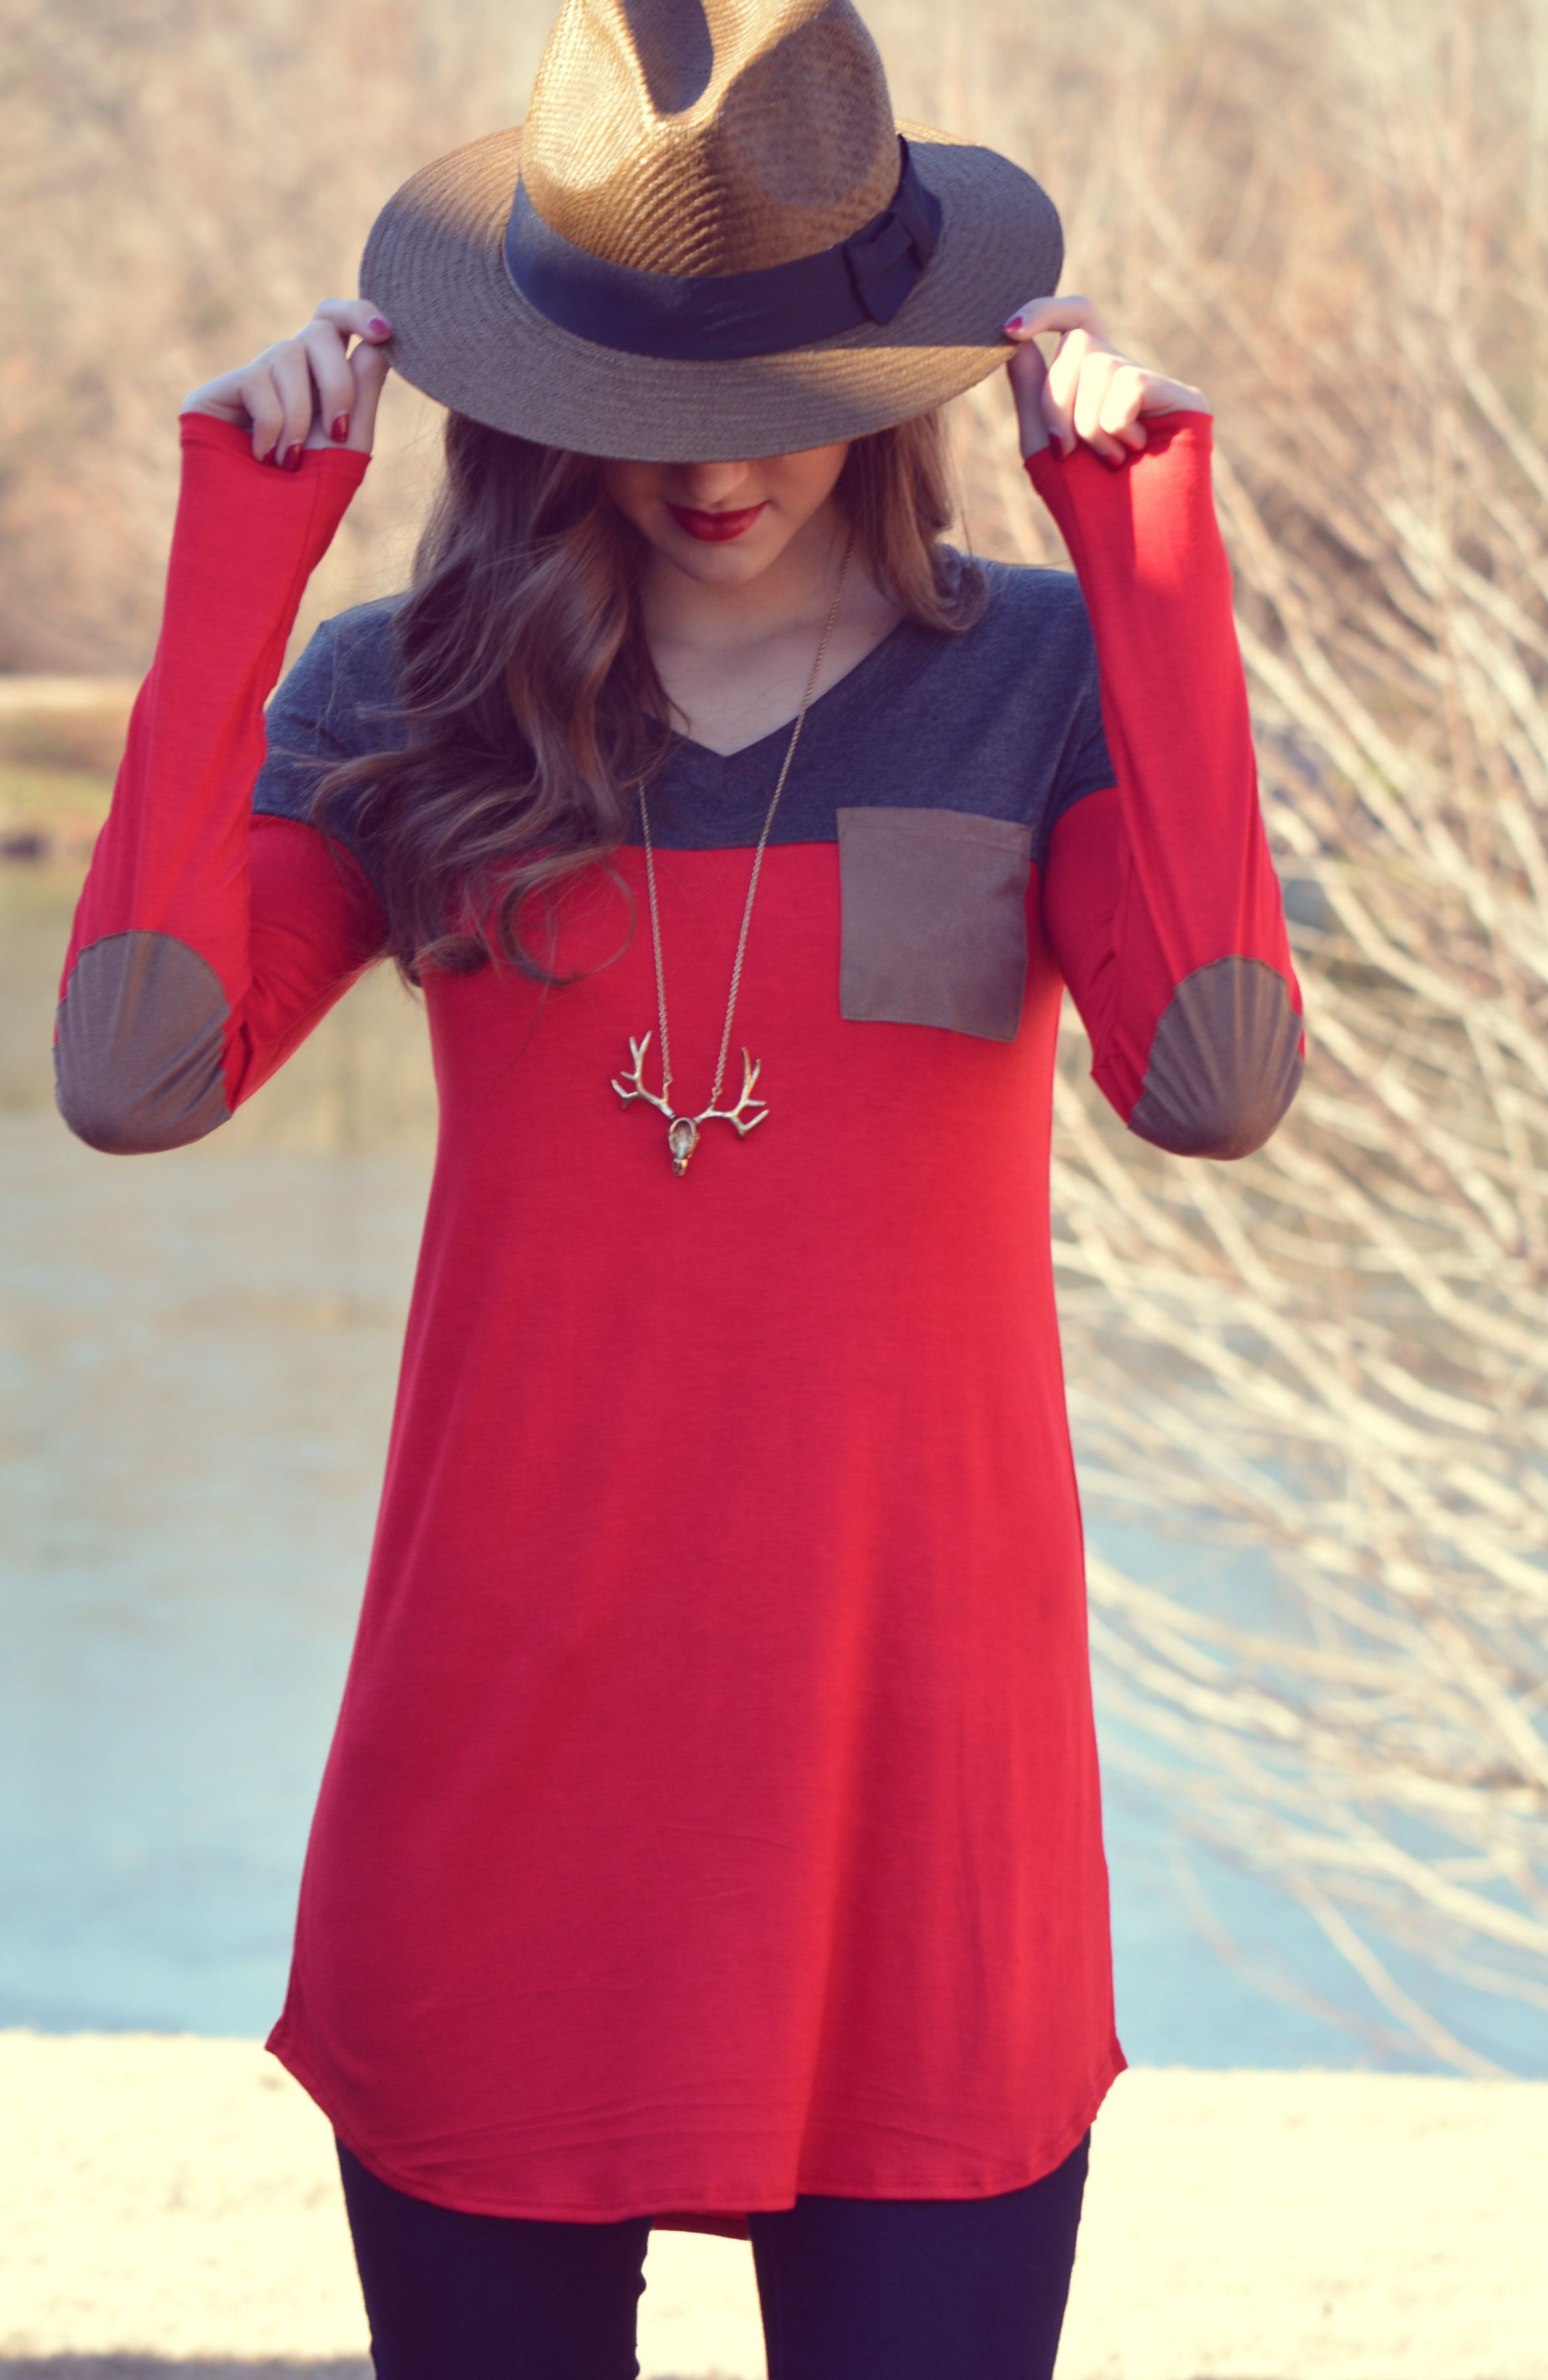 Red and Grey Elbow Patch Tunic/Top  shopbelleboutique.com